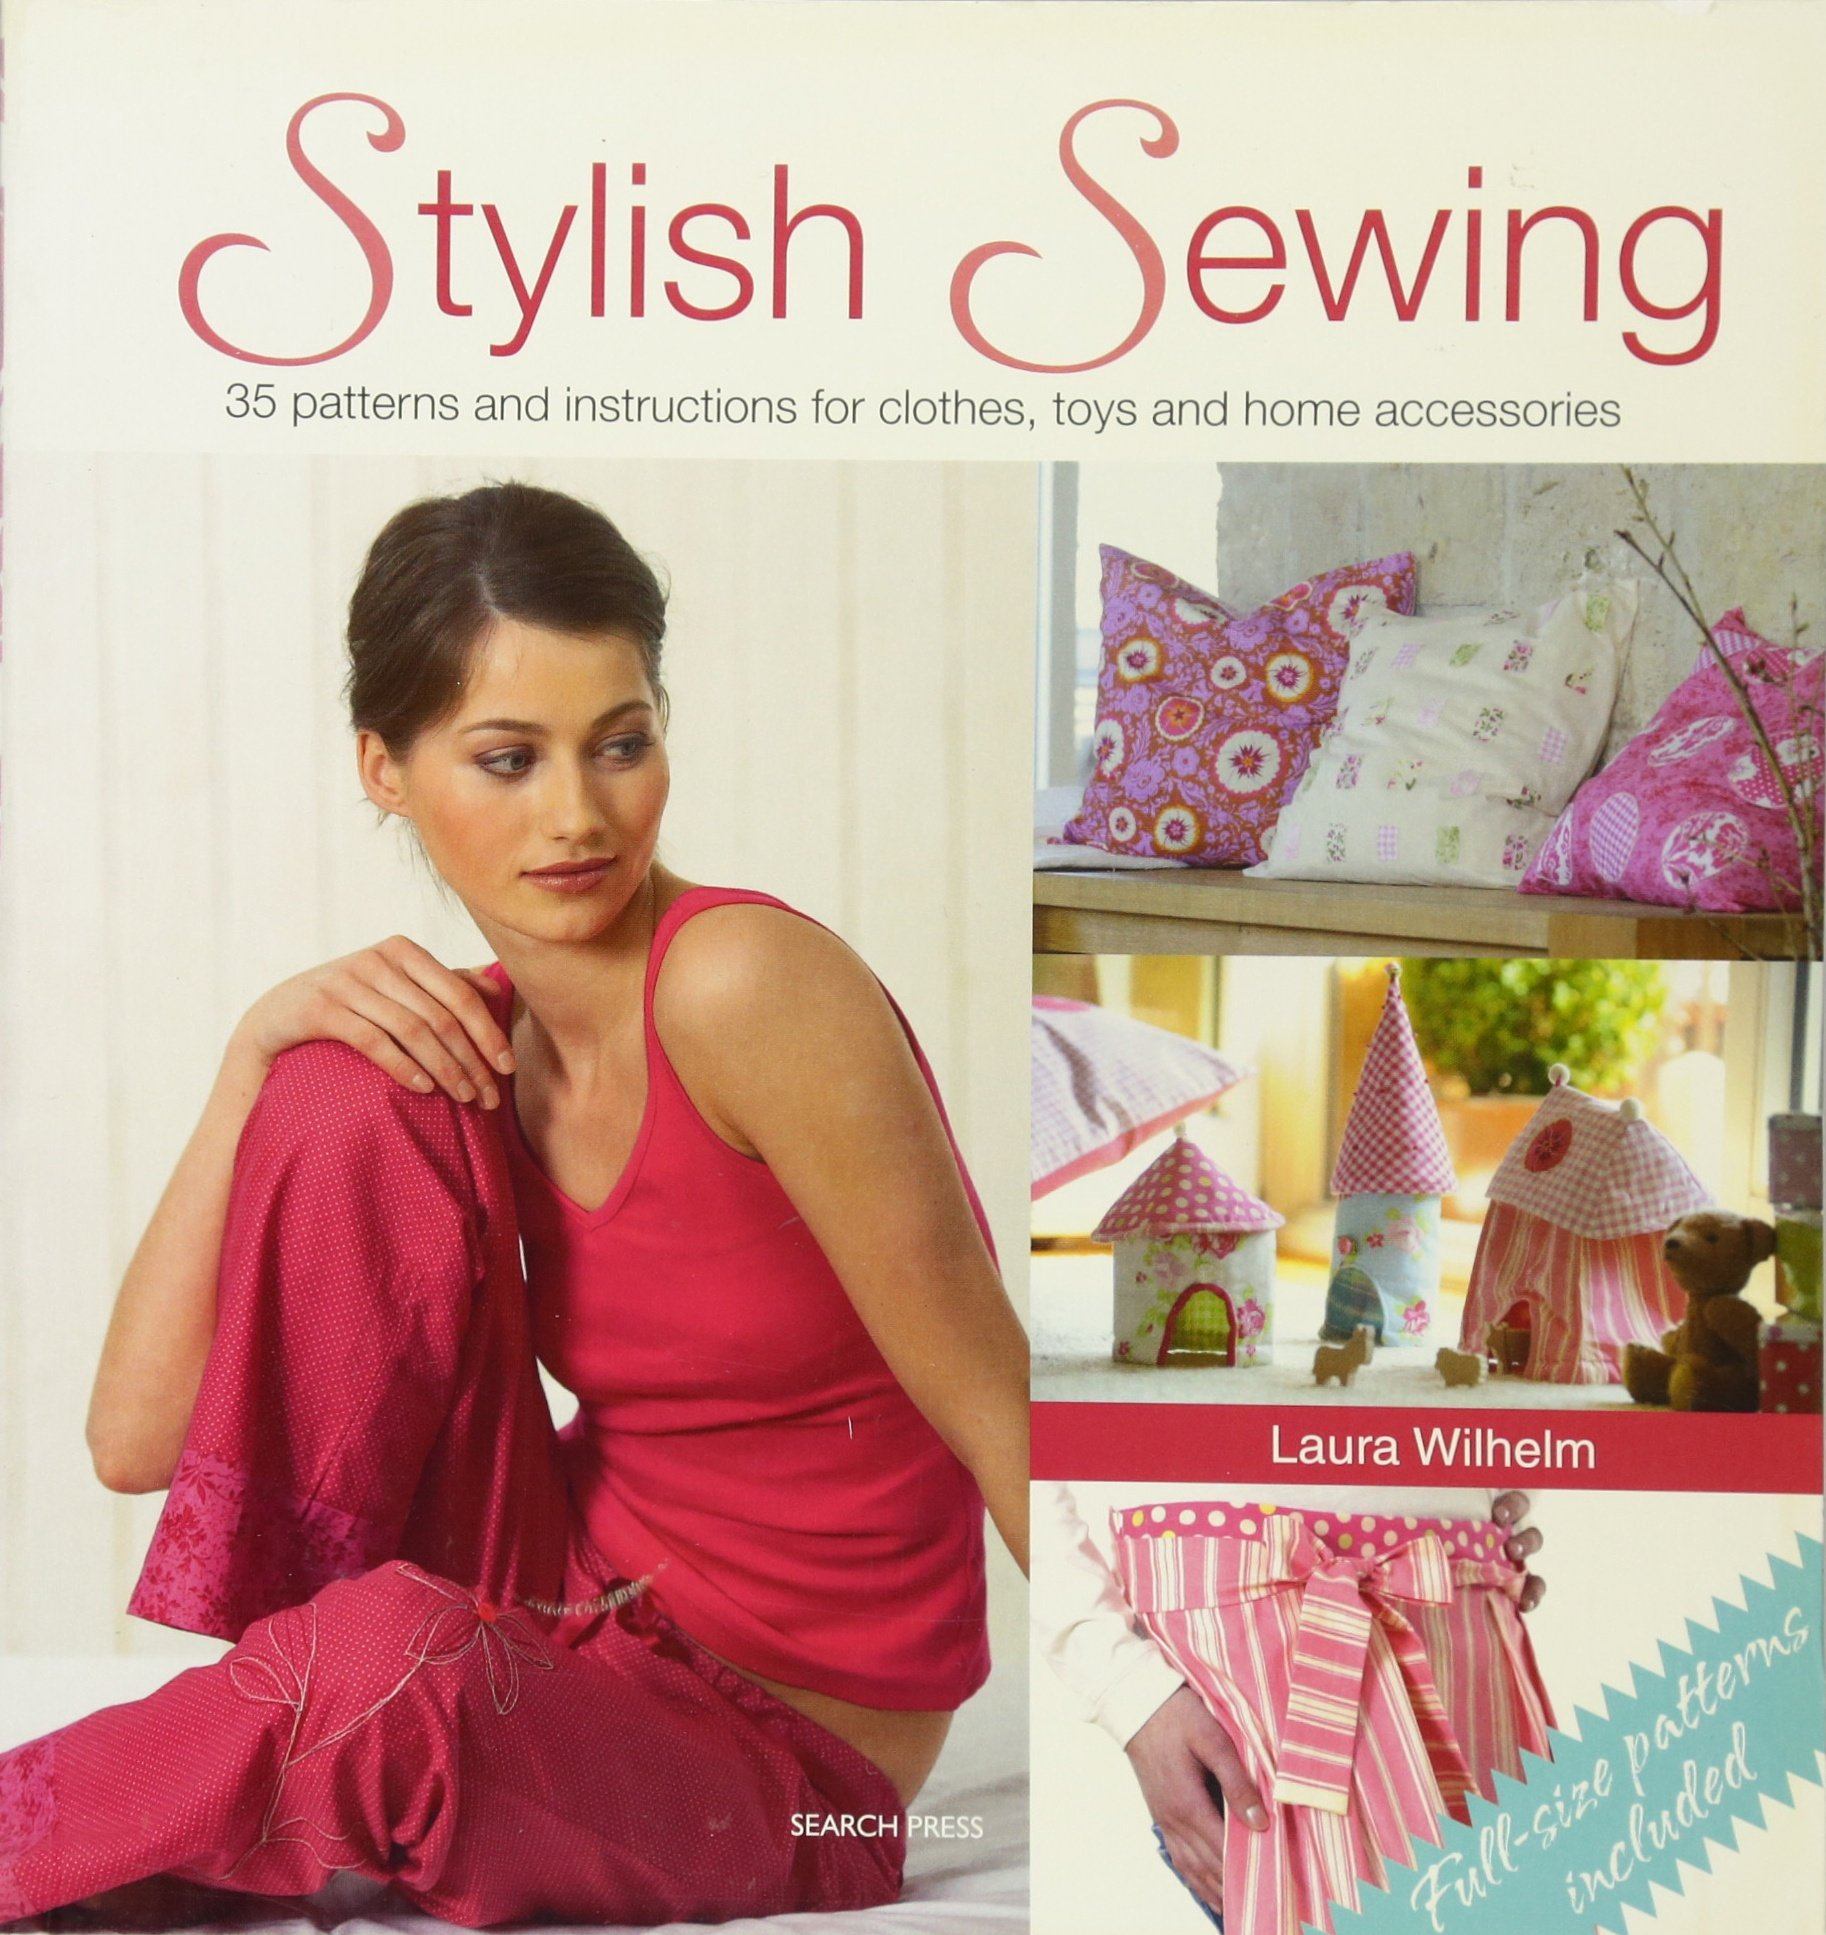 Stylish Sewing: 25 Patterns and Instructions for Clothes, Toys and Home Accessories (Inspirational Craft Book)